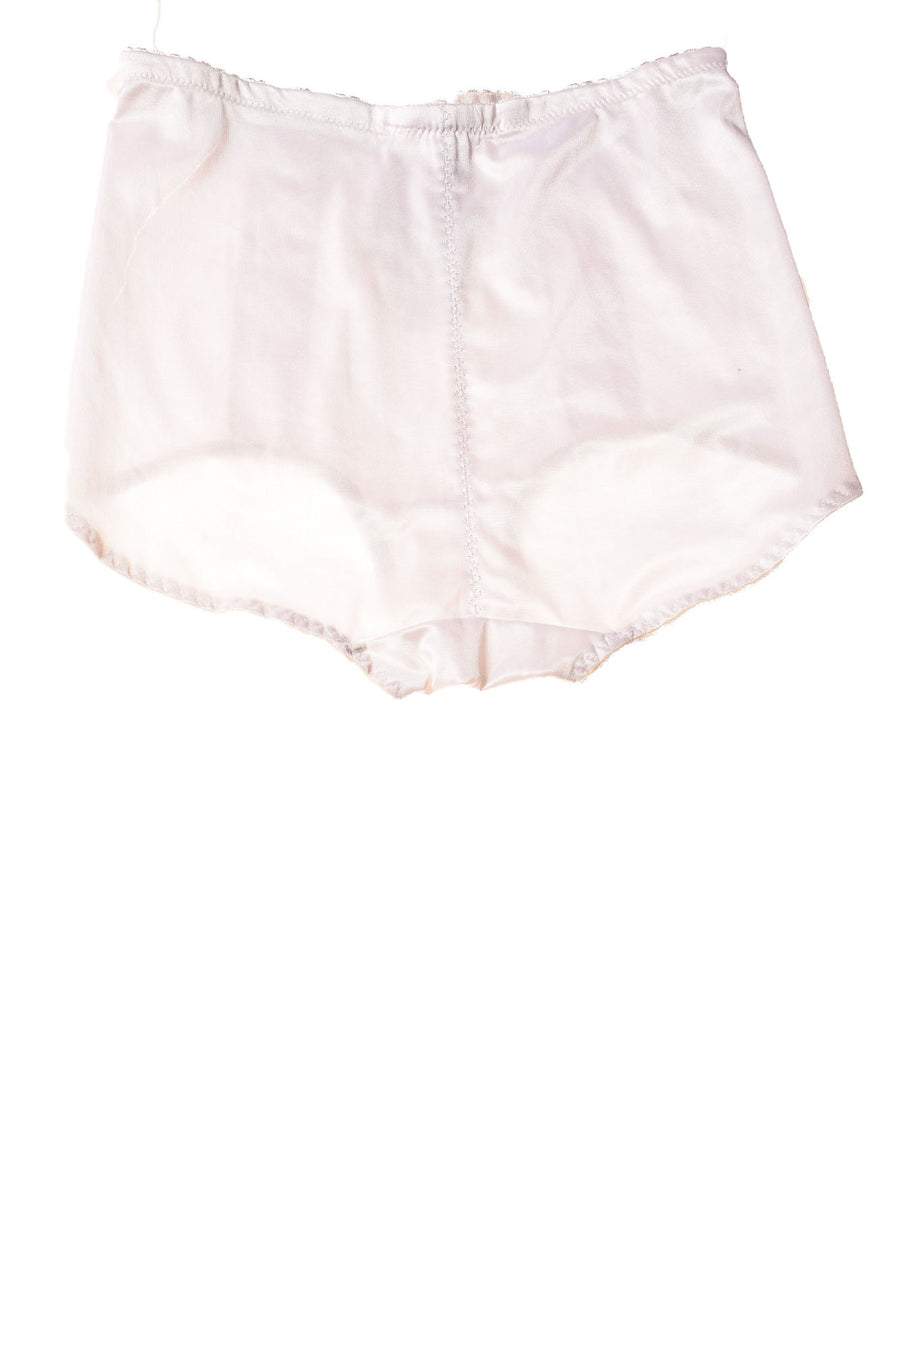 NEW Lady Princess Women's Panties X-Large White